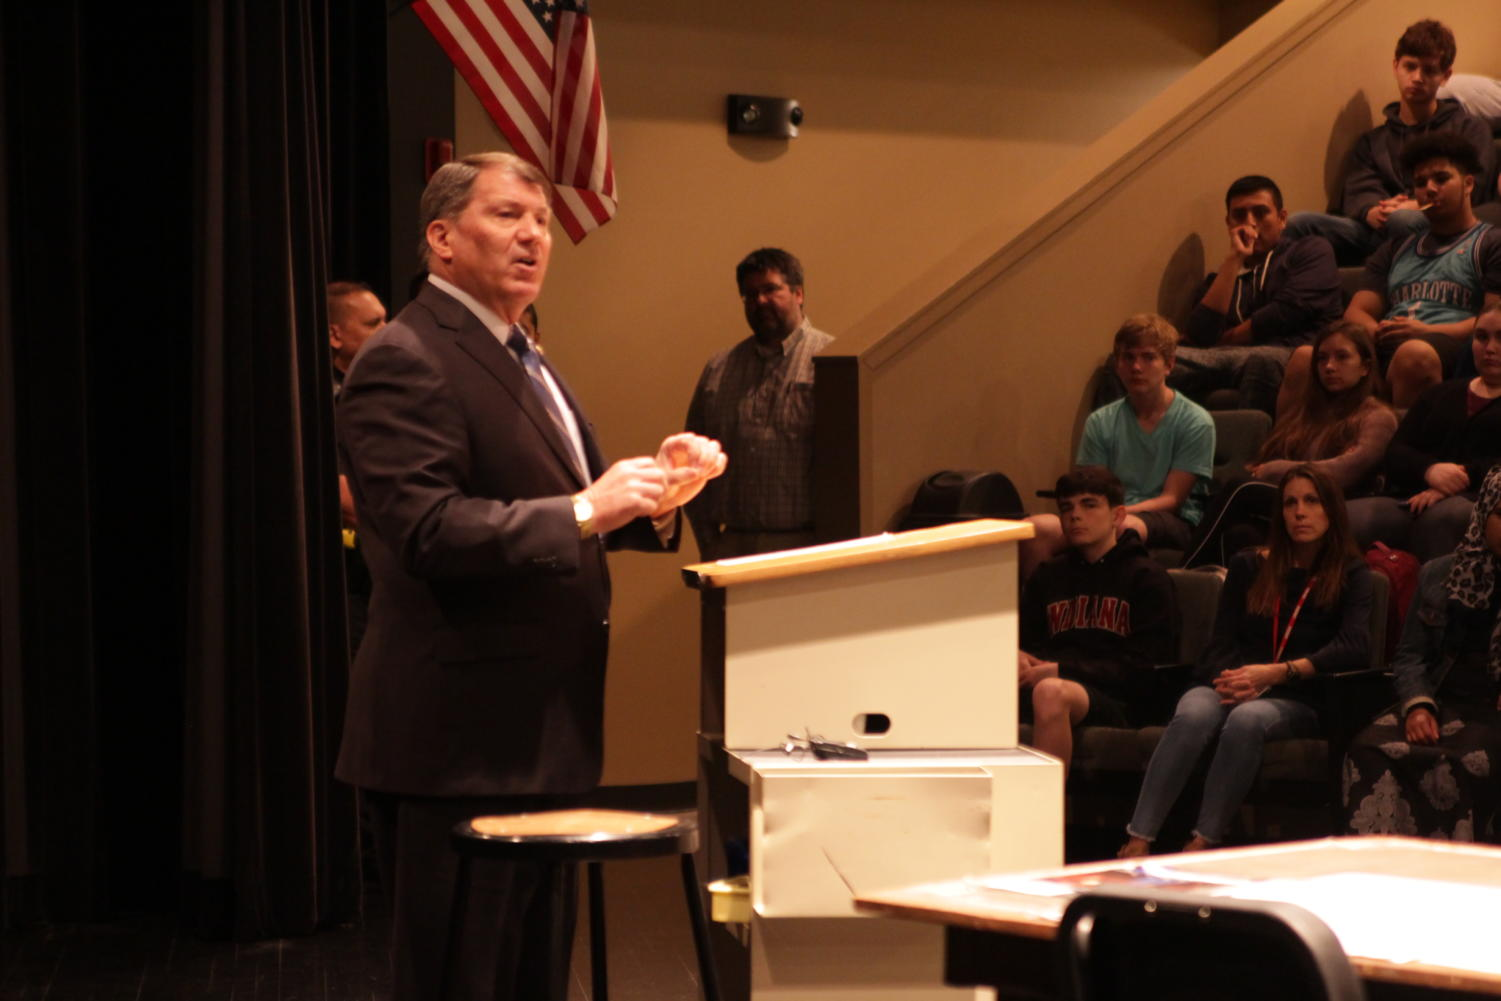 Senator Mike Rounds holds a question and answer session in the LHS little theater.